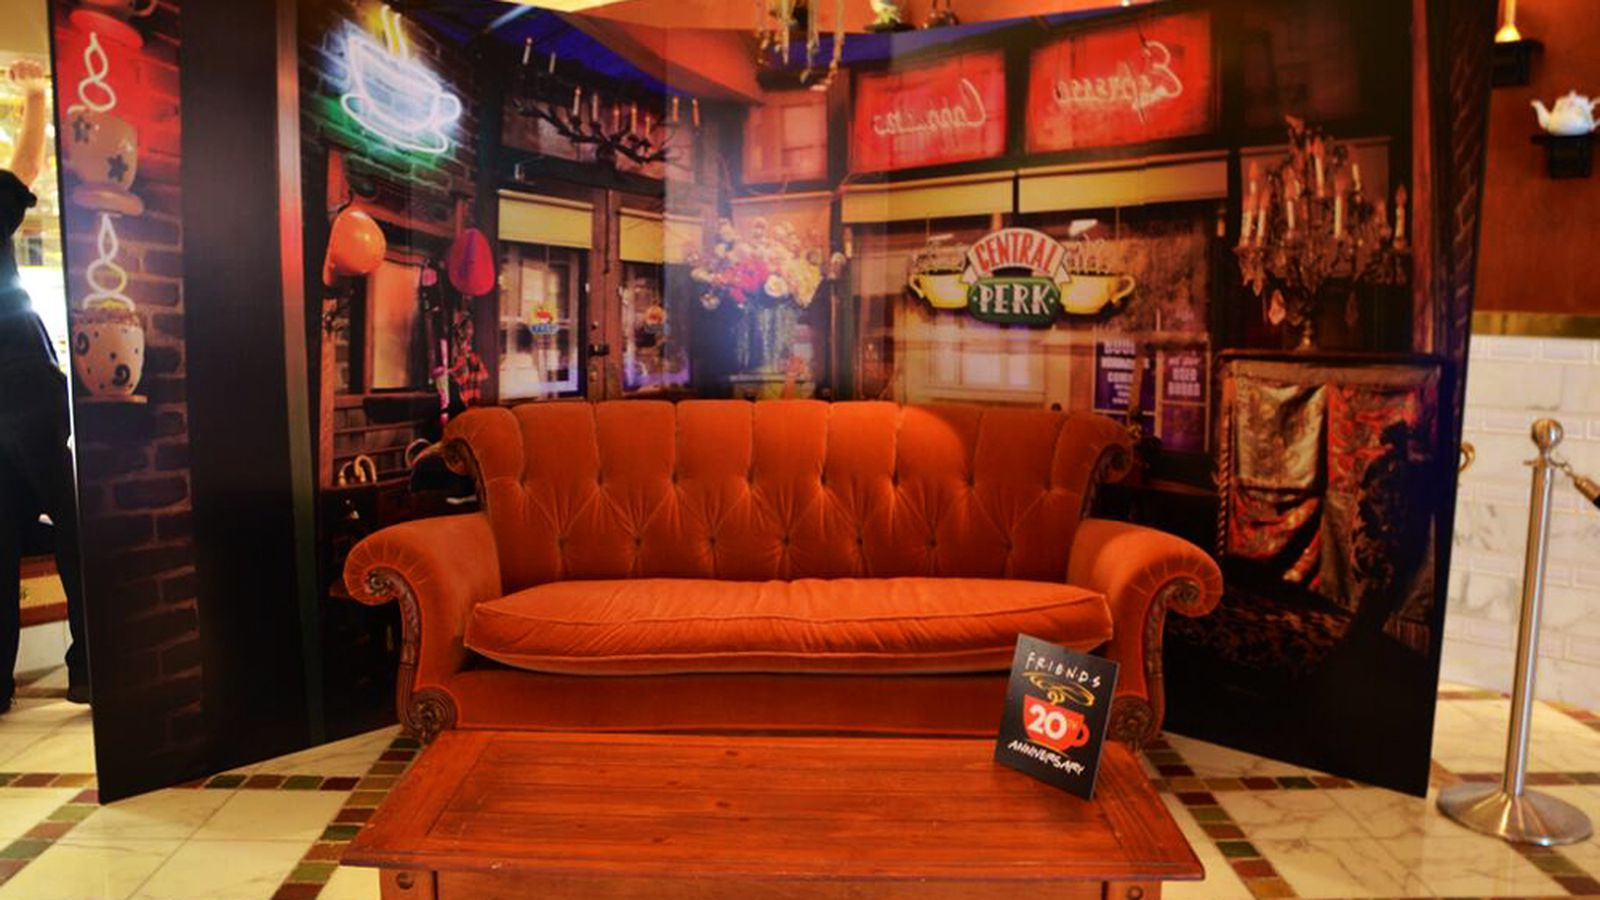 Quick The Couch from Friends Is Sitting at the Mirage  : Friends20Couch20at20Mirage206 25 20140 from vegas.eater.com size 1600 x 900 jpeg 168kB